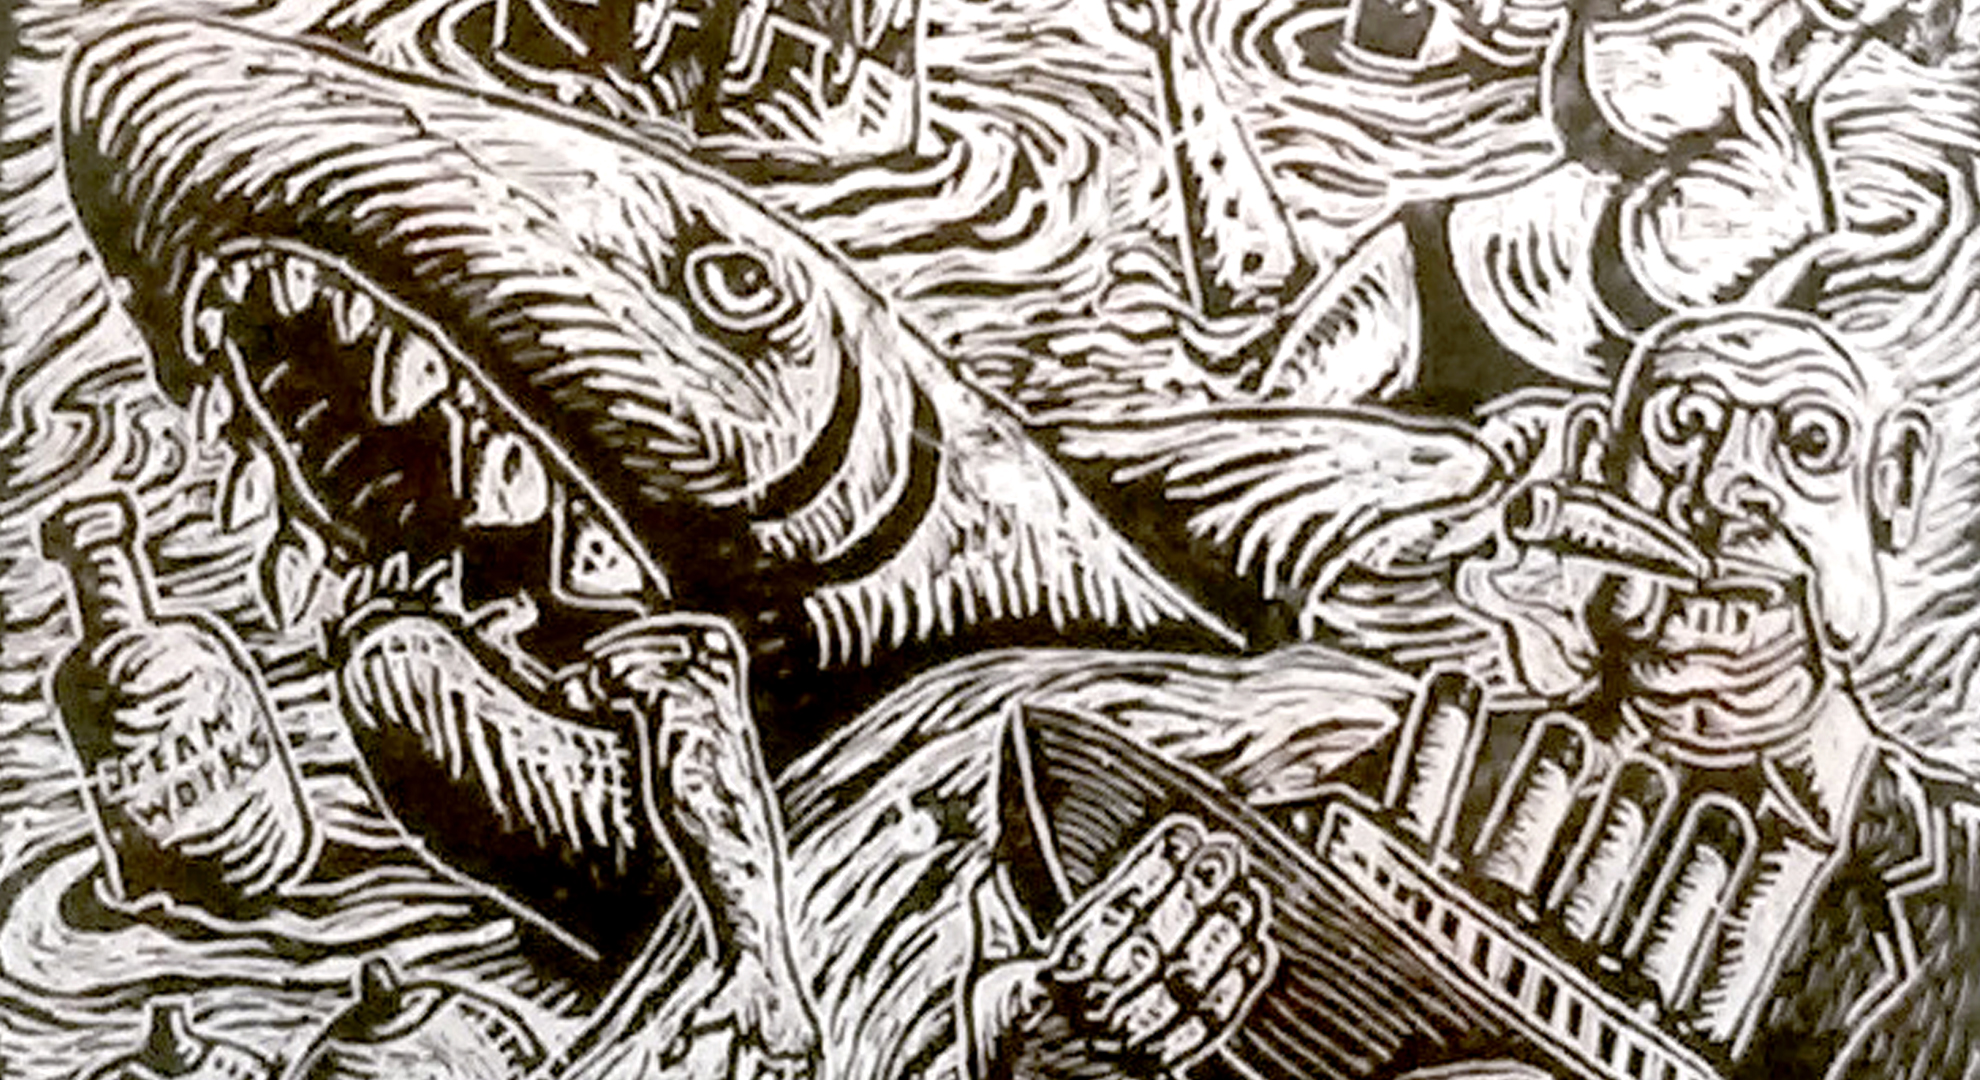 detail, Stephen Lewis, relief print